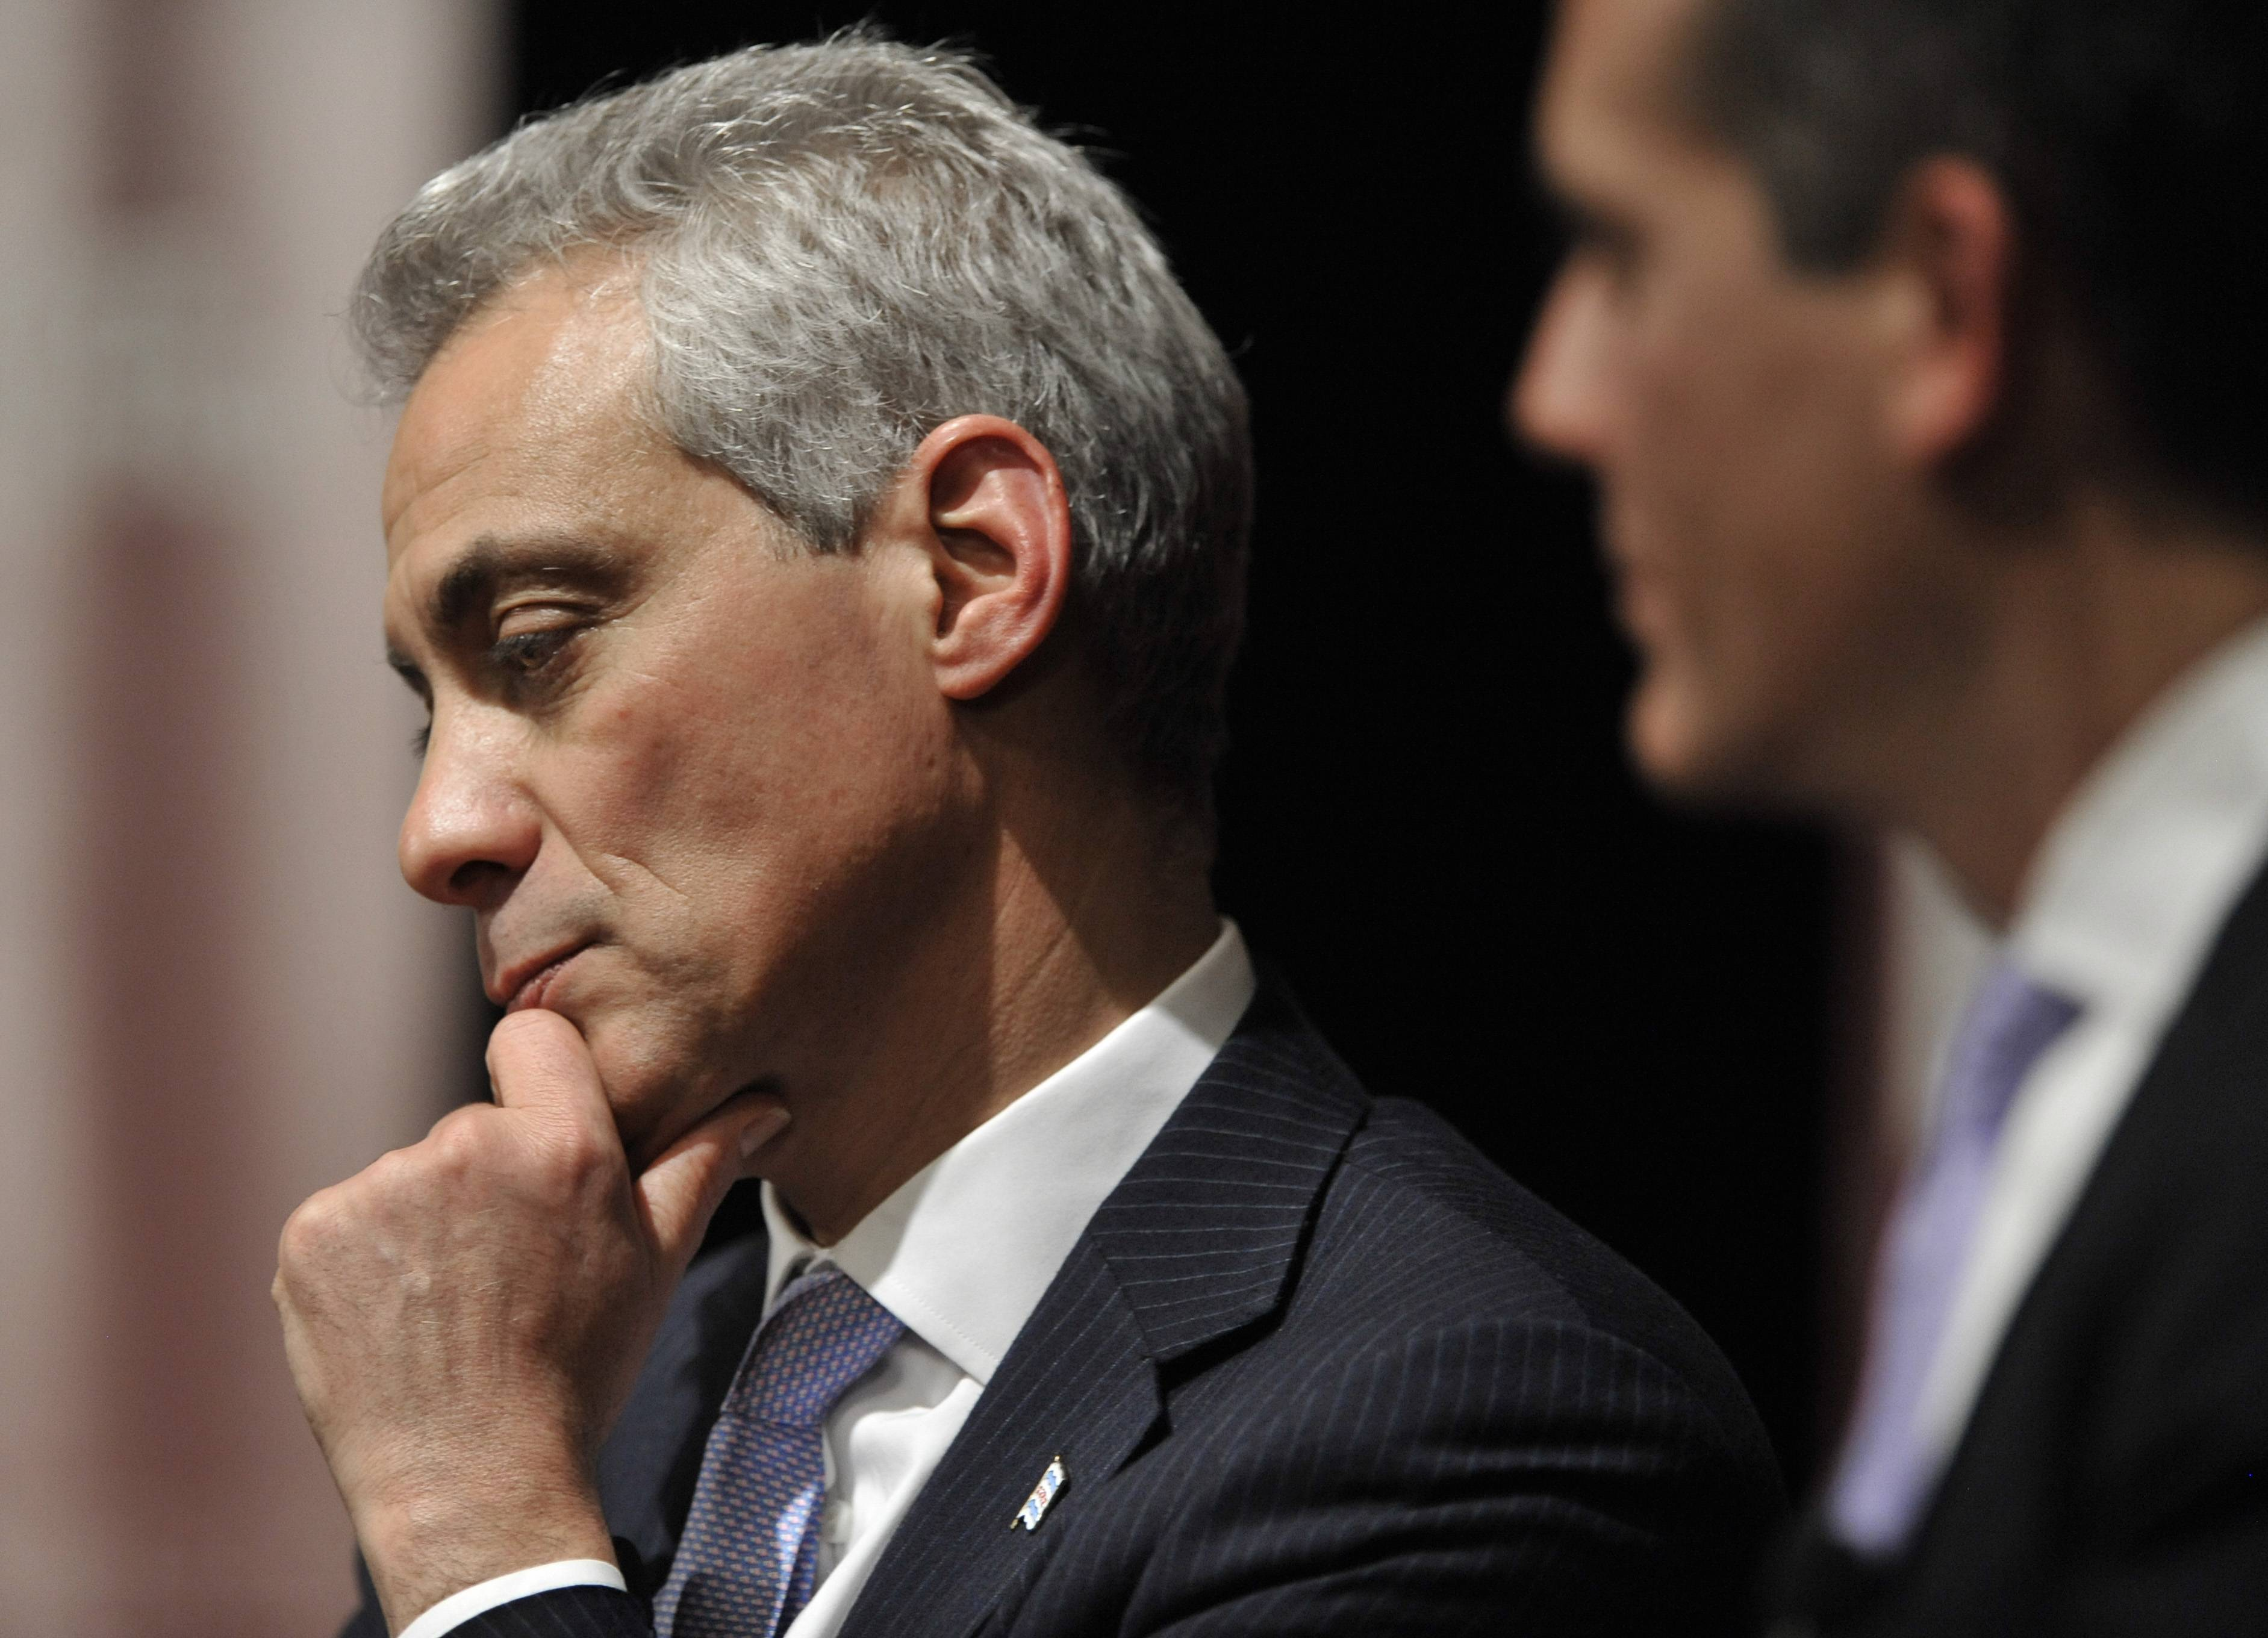 Pensions pose latest challenge for Chicago mayor